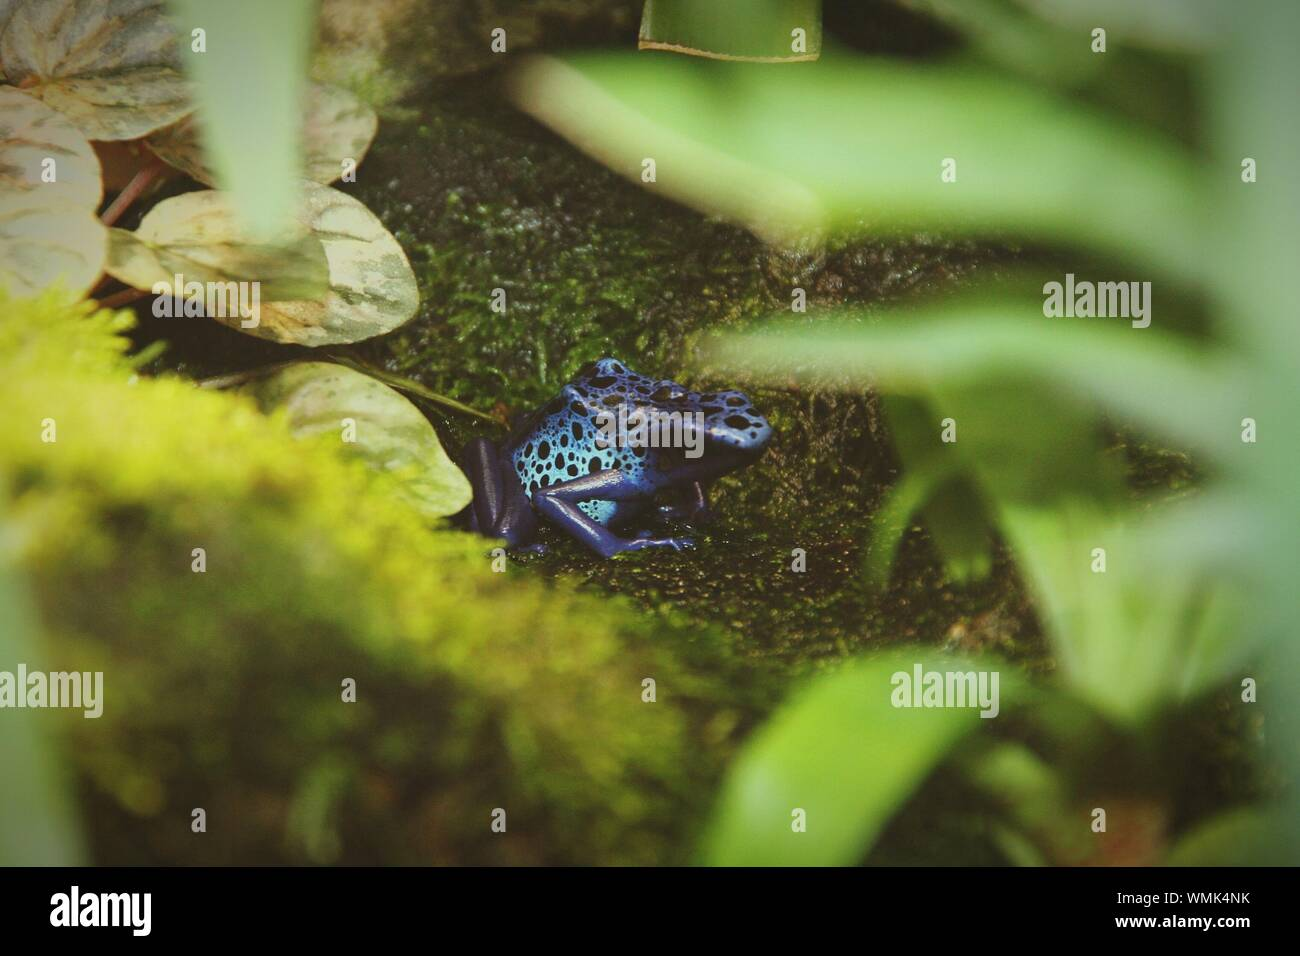 High Angle View Of Blue Spotted Frog Seen Through Plants Stock Photo